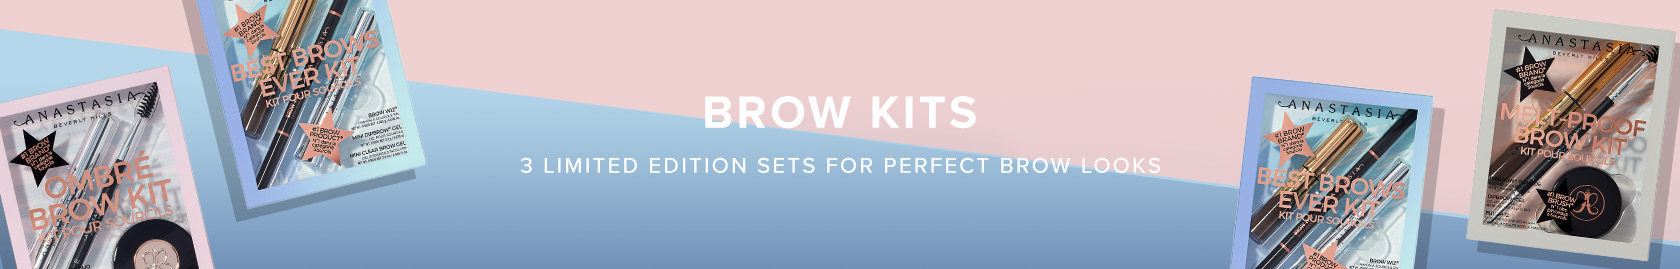 New Brow Kits - 3 limited edition sets for the perfect brow looks